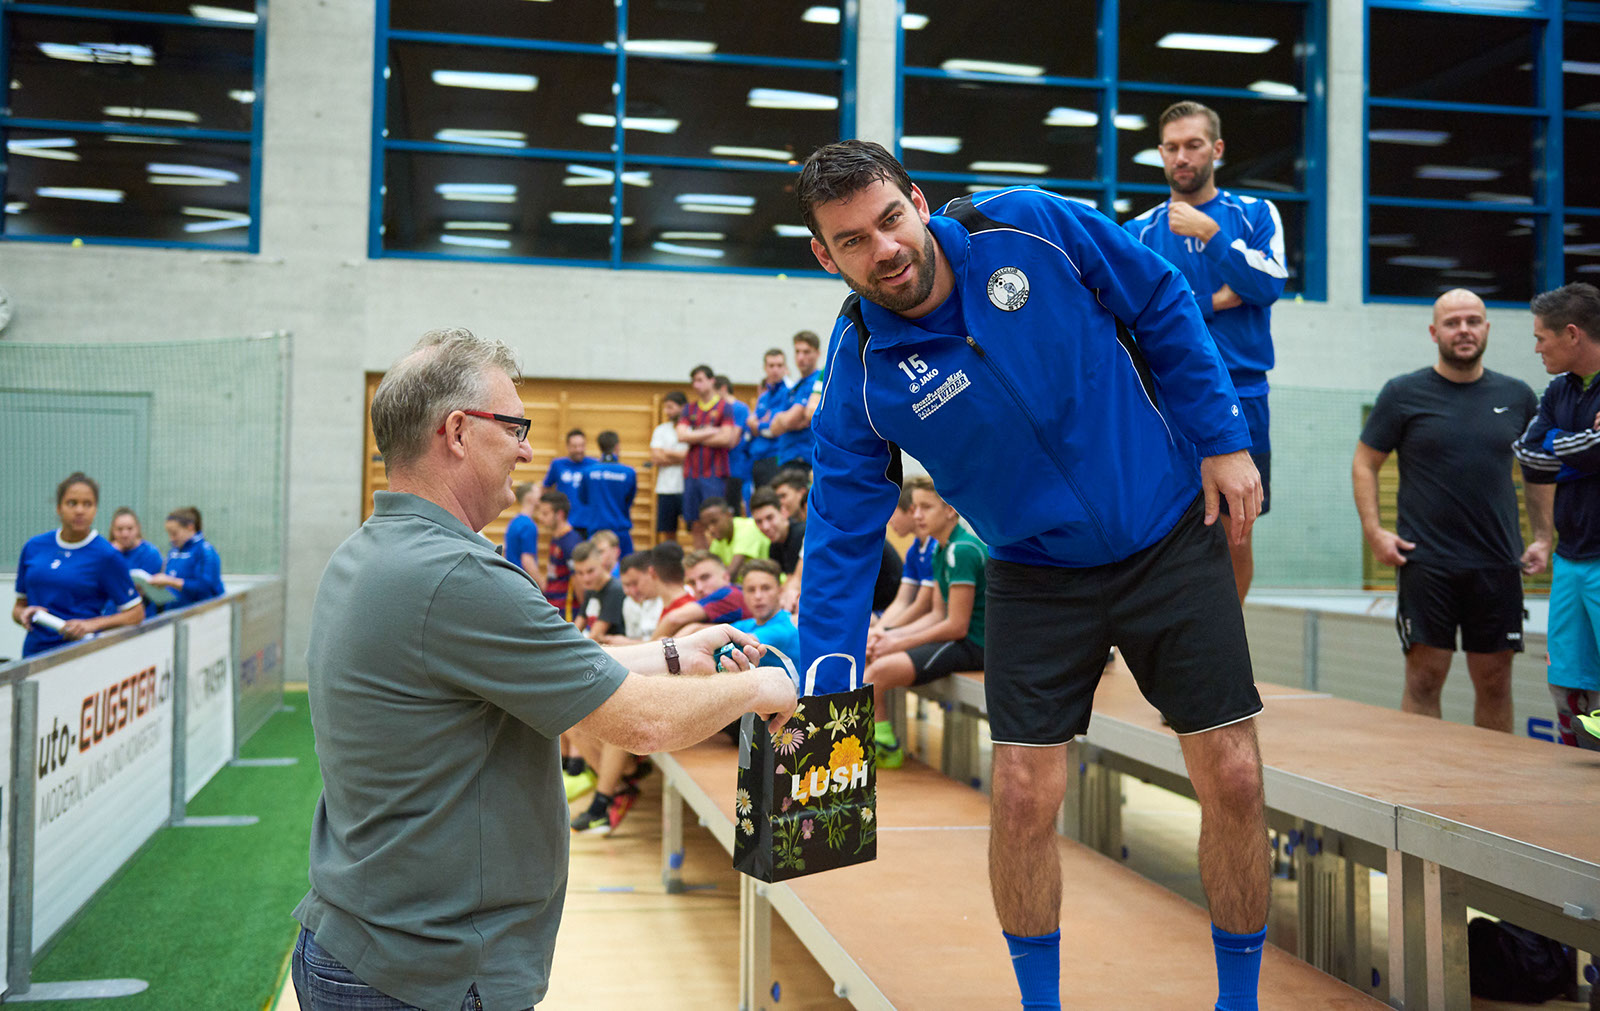 Bodensee-Cup_20171110_201825.jpg